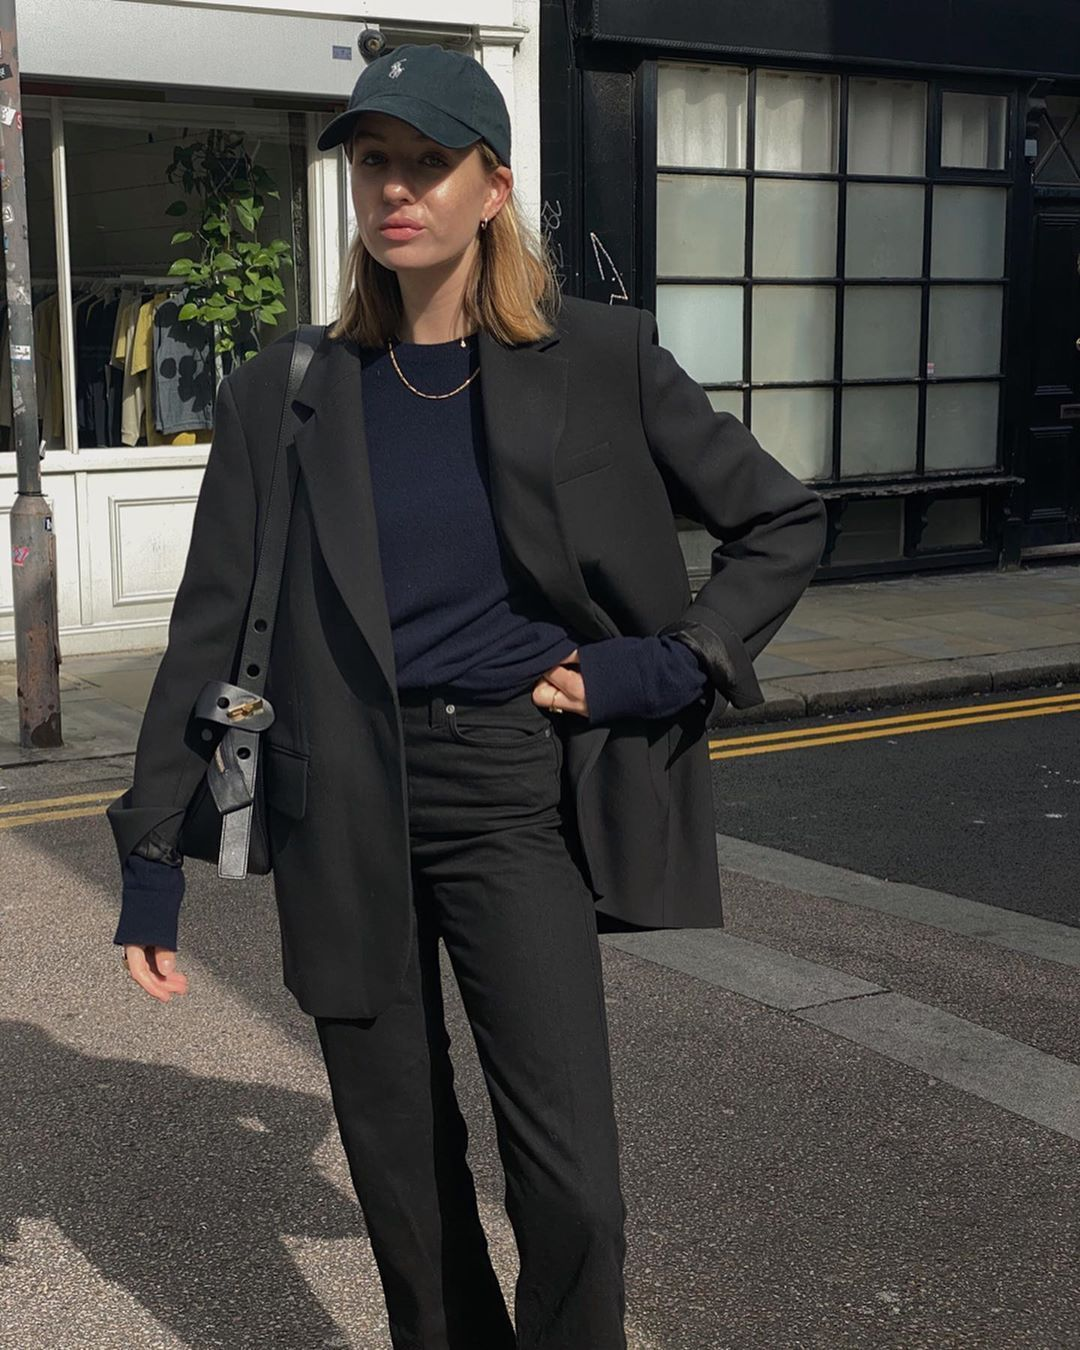 Lizzy Hadfield On Instagram Going Incognito Hadfield Incognito Instagram Lizzy Second Hand Clothes Fash In 2020 Casual Style Outfits Fashion Minimal Fashion